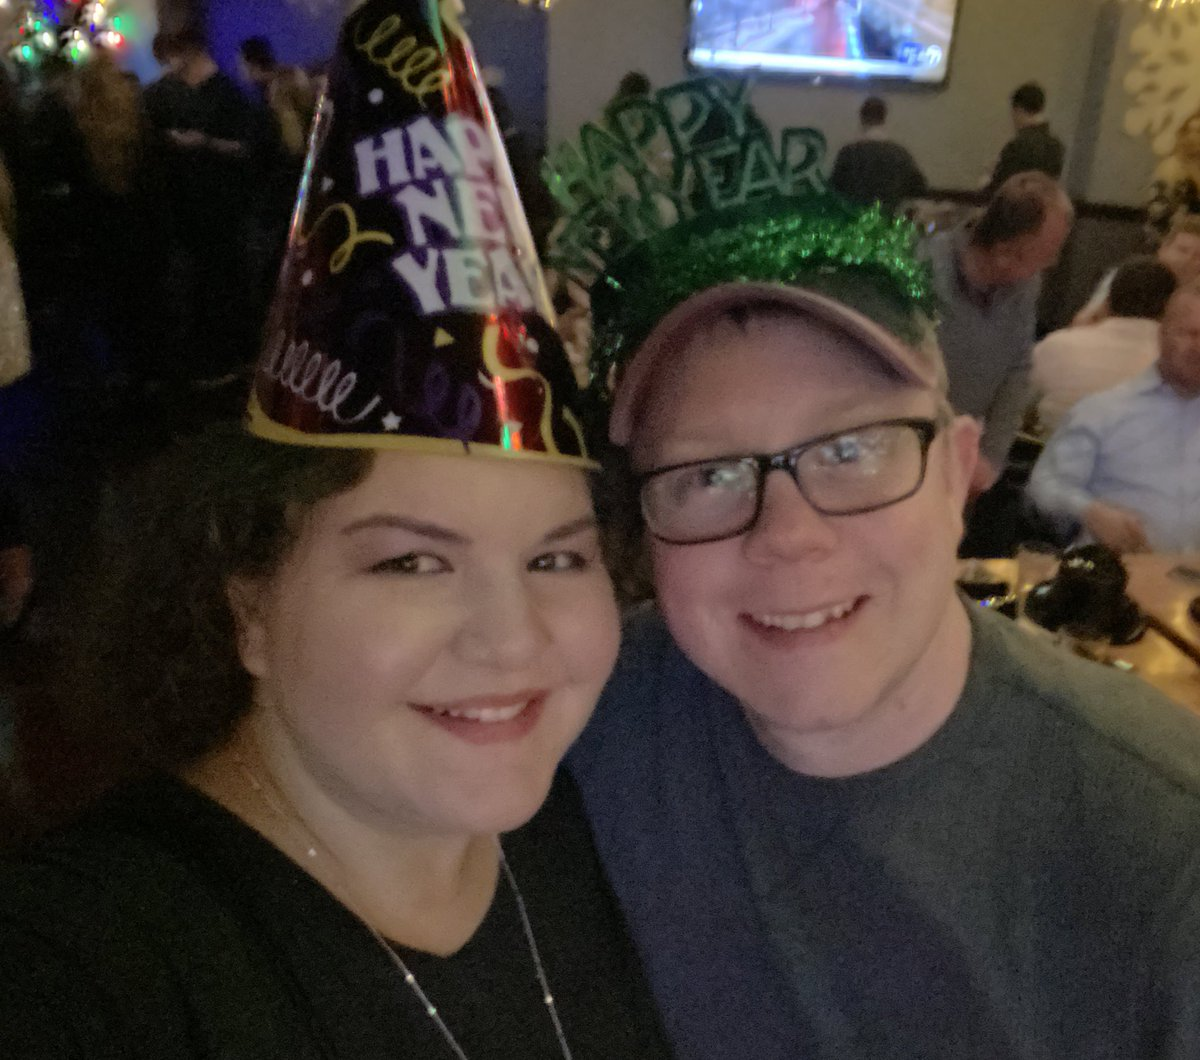 Happy new year from Team Stratton:  Chapter